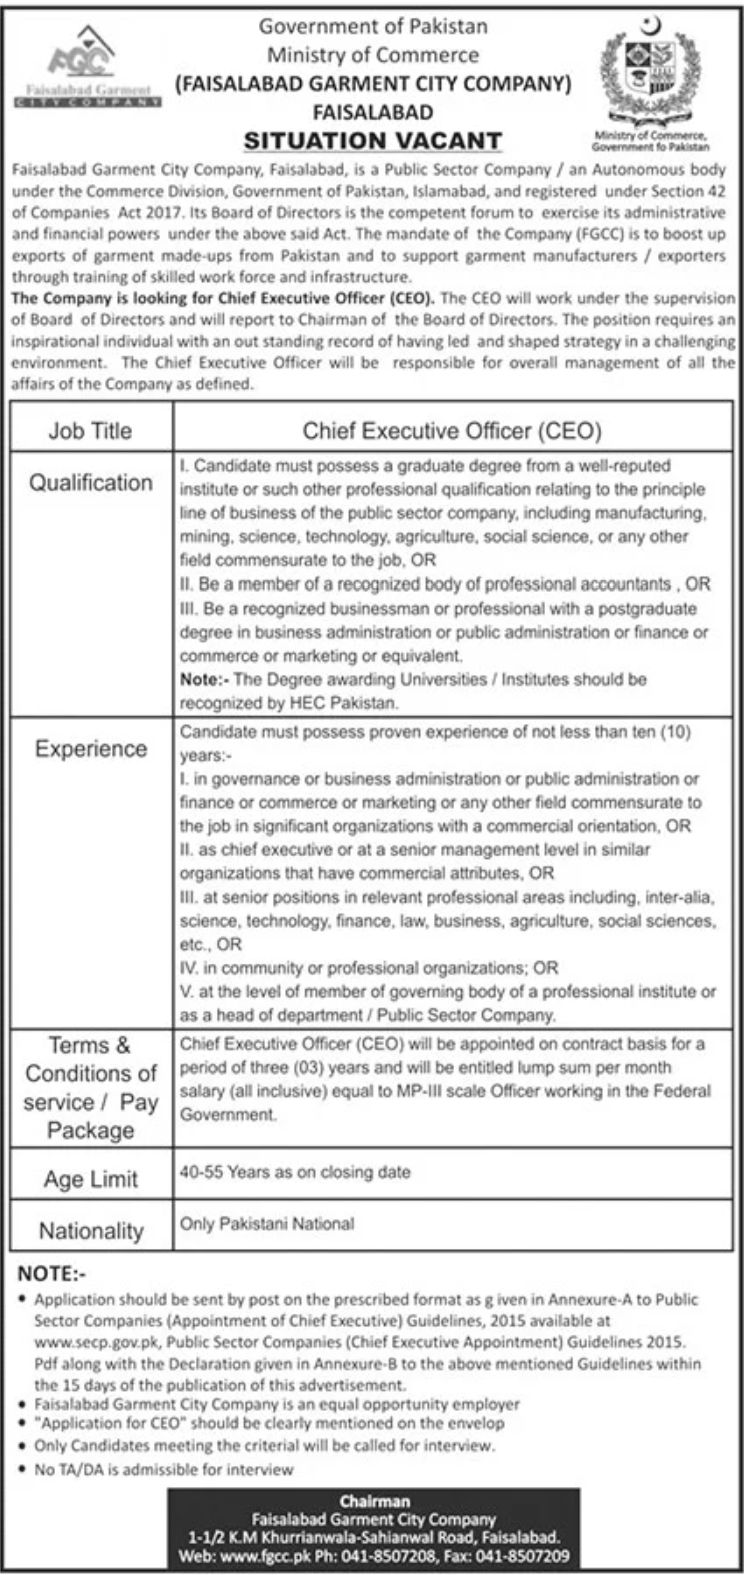 Government of Pakistan Ministry of Commerce Jobs February 2021